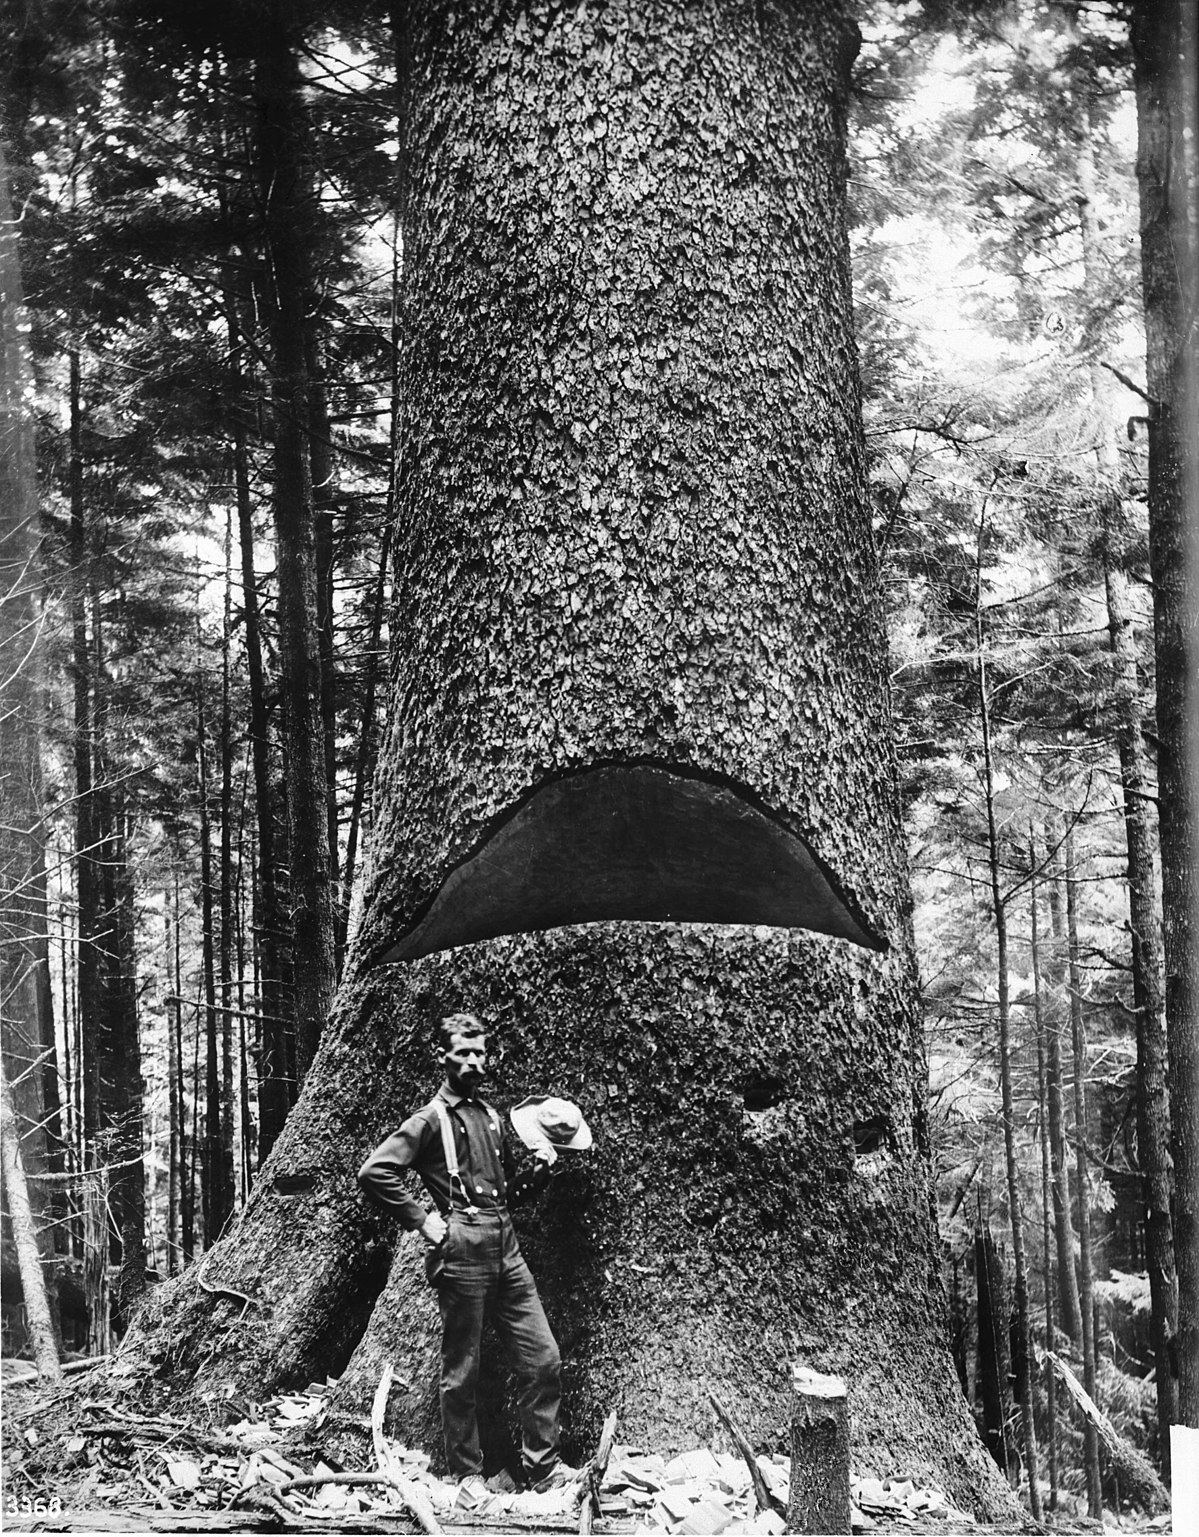 The High Lead System Involves A Spar Tree For Cable To Run And From Felling Of These Makes Some Most Incredible Photos